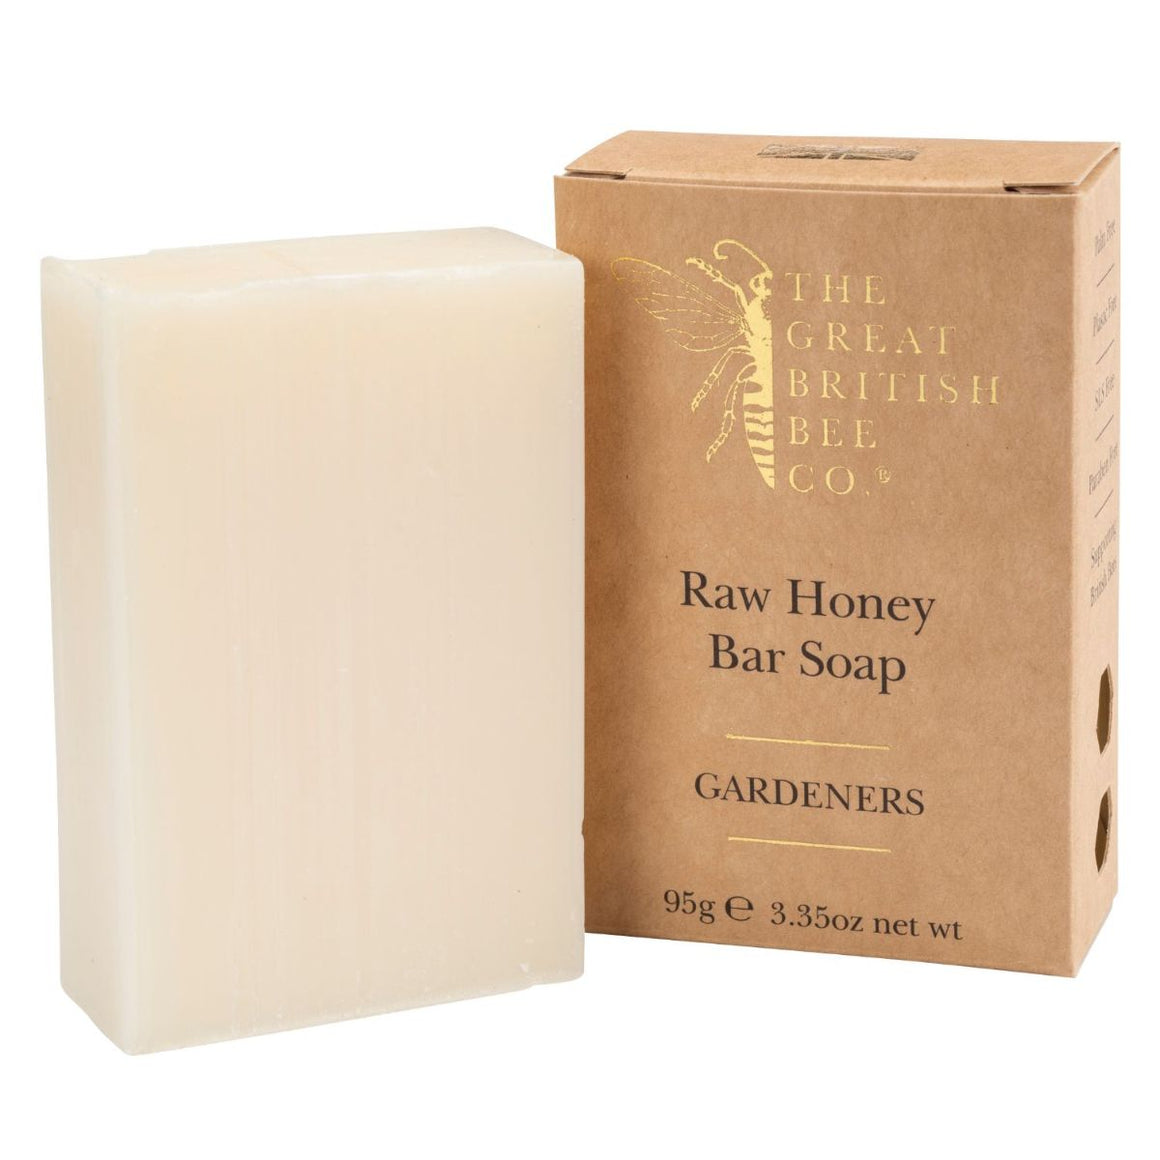 Raw Honey Bar Soap 95g - Gardeners